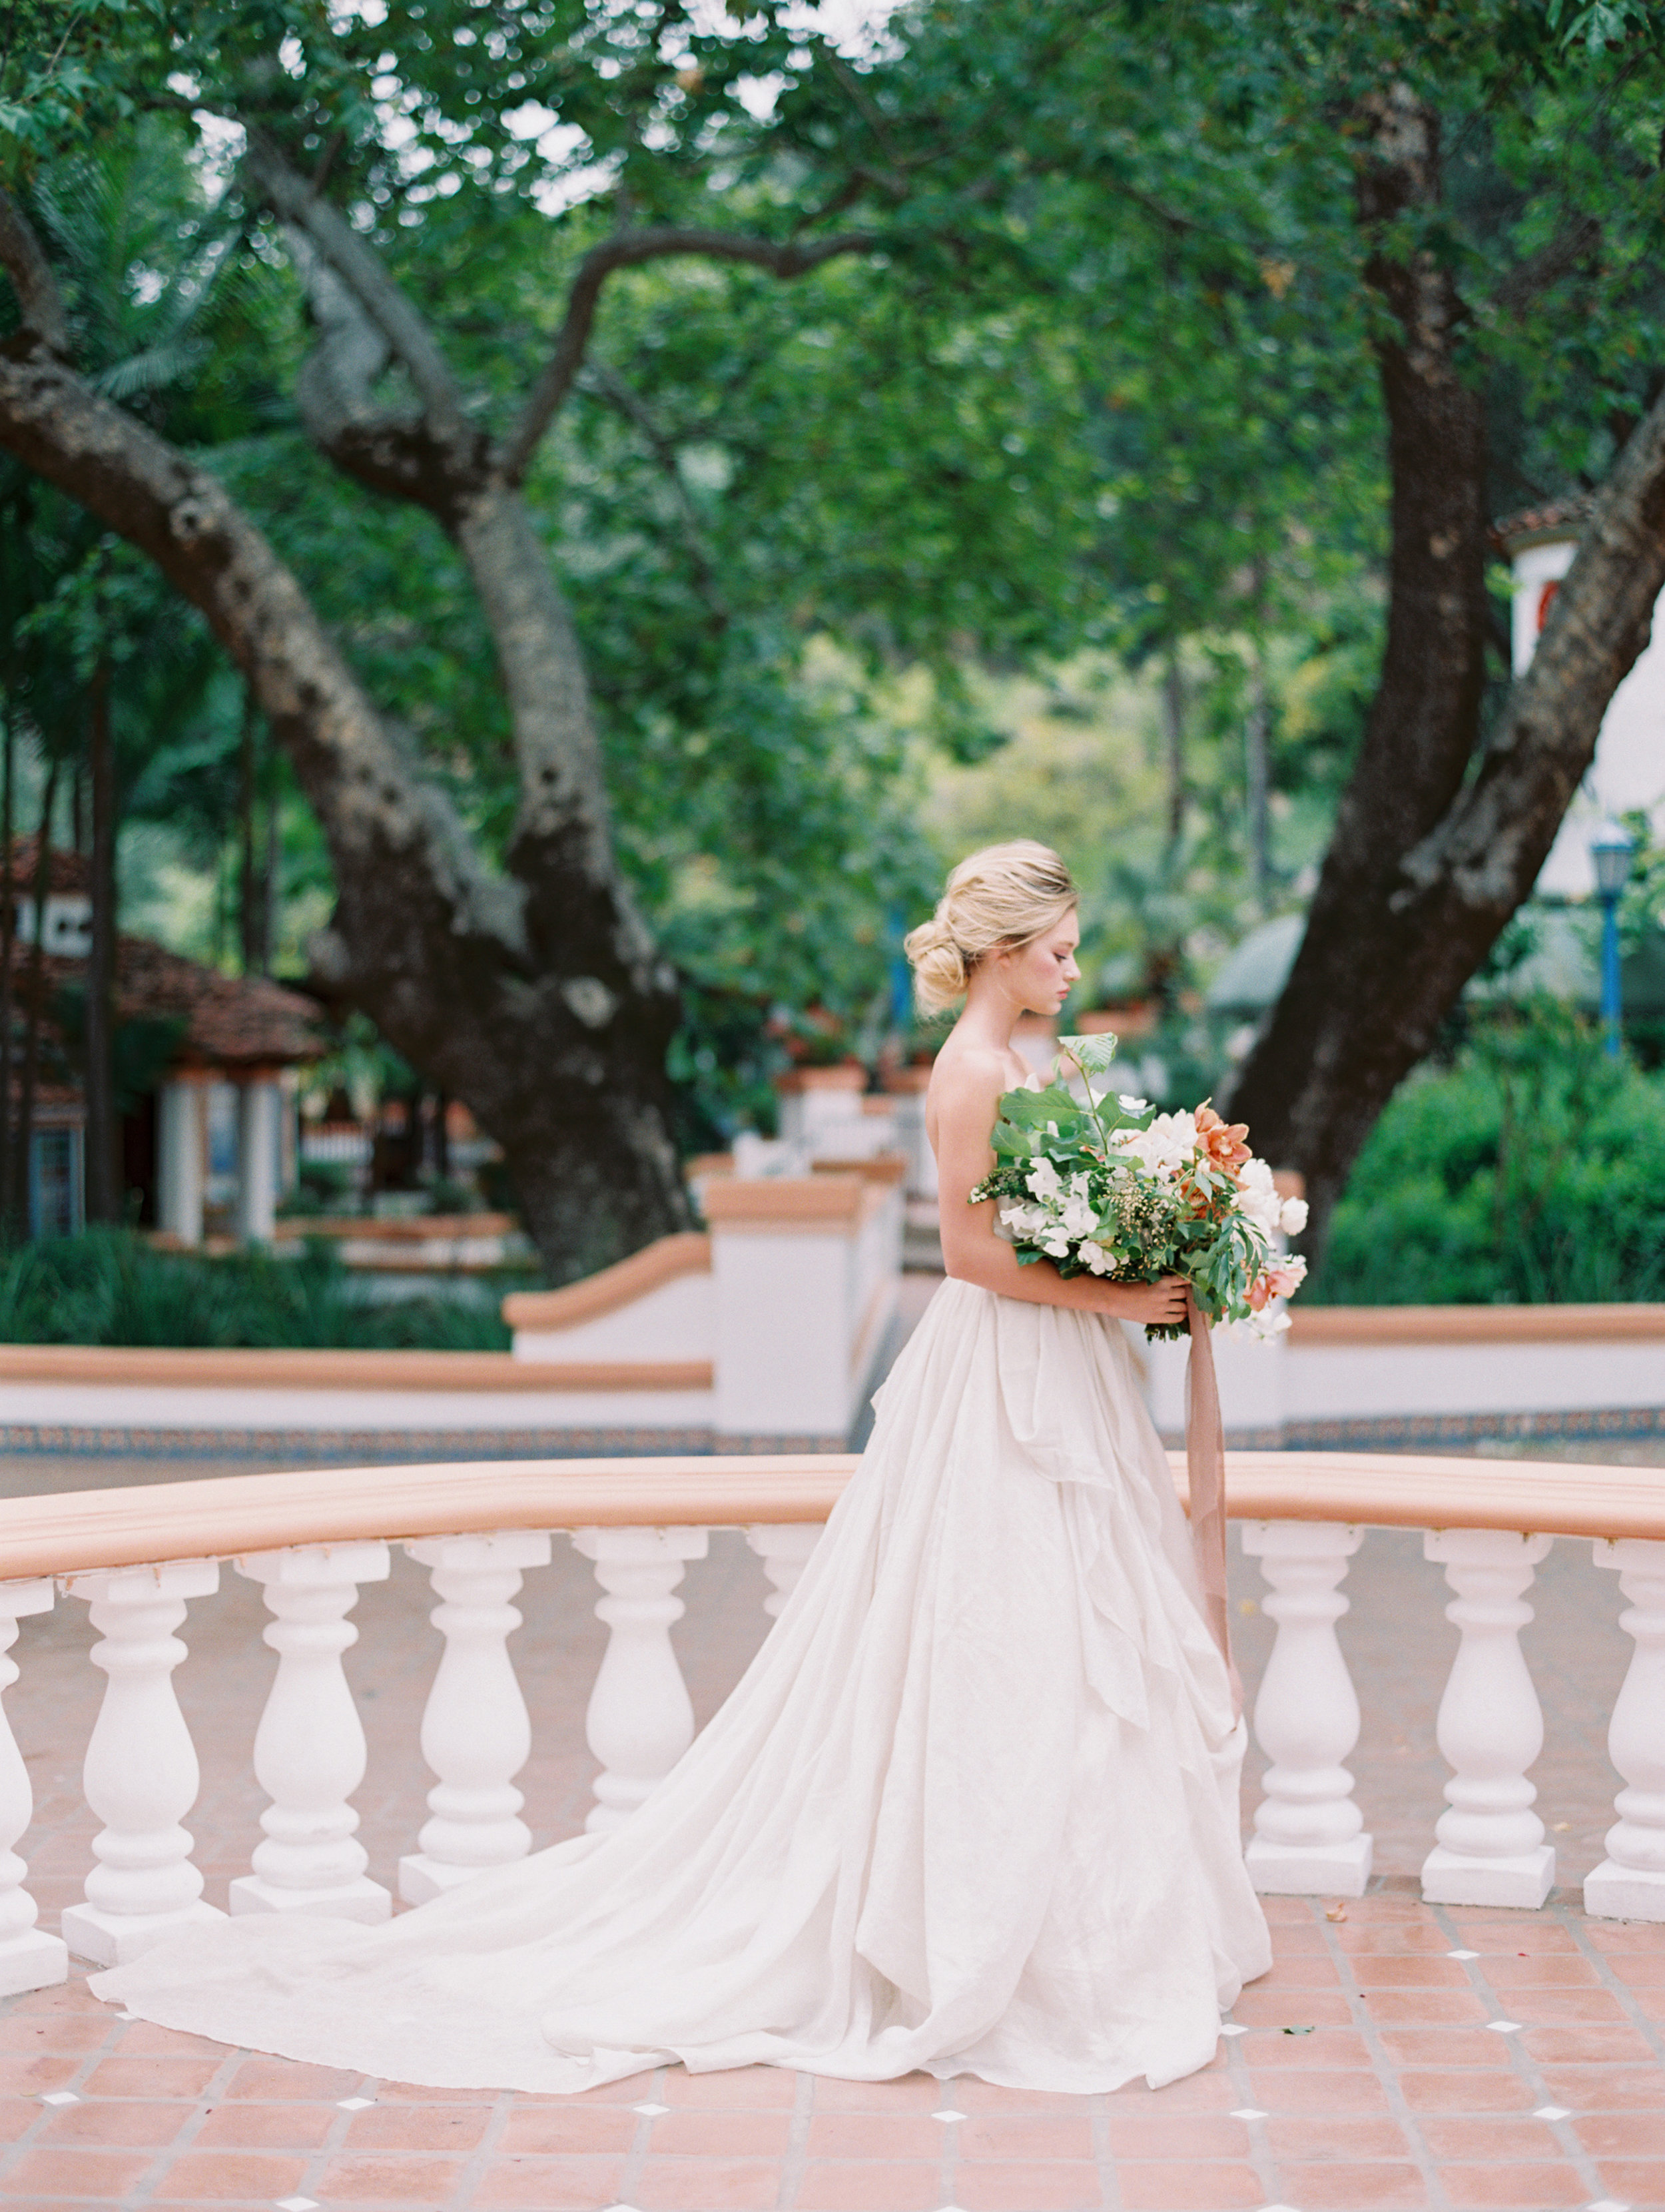 Jon Cu86- Rancho-Las-Lomas-california-film-wedding-bride-groom-spanish-peach.jpg